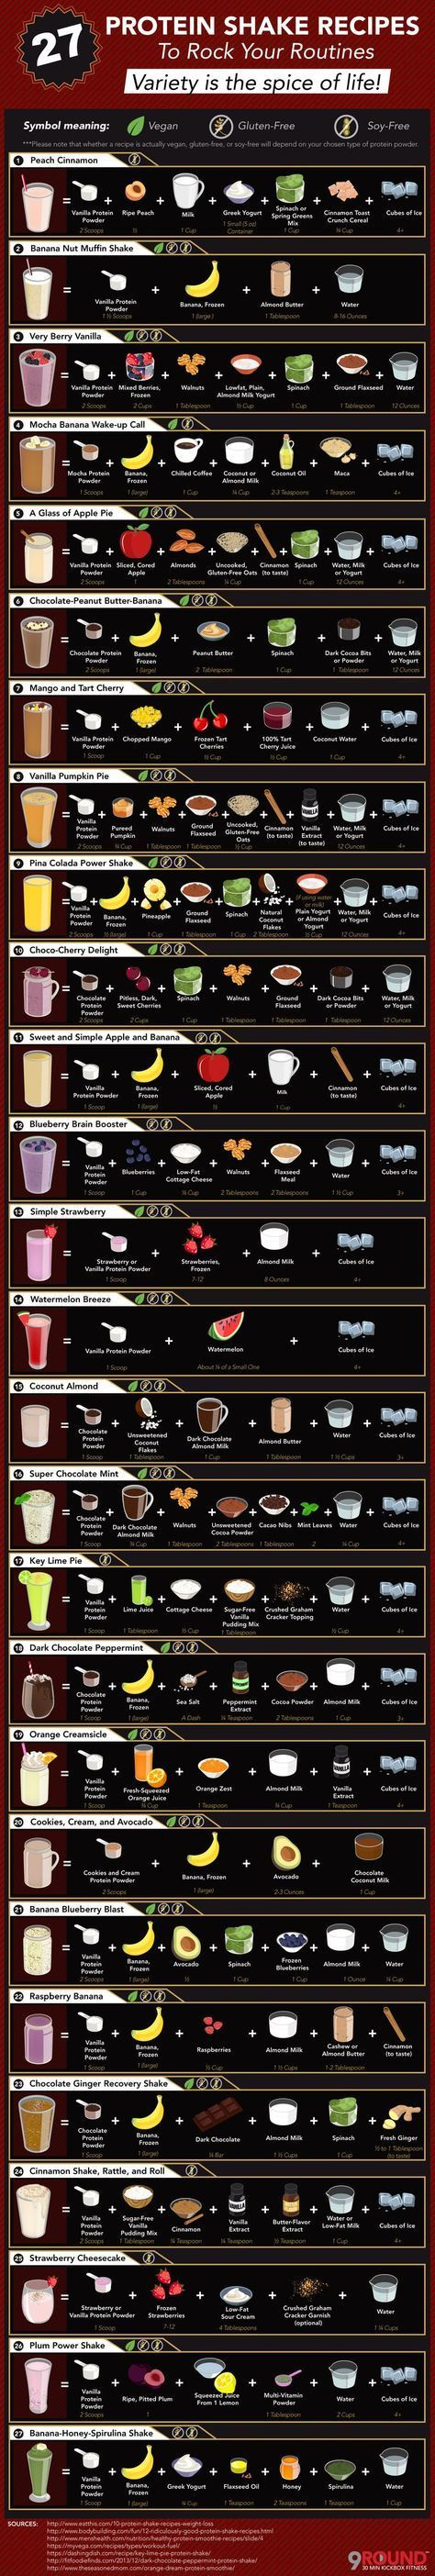 Protein Shake Recipes to Rock Your Routines | 9round.com #Infographic #Protein_Shakes Men's Super Hero Shirts, Women's Super Hero Shirts, Leggings, Gadgets & Accessories 50%OFF. #marvel #gym #fitness #superhero #cosplay lovers